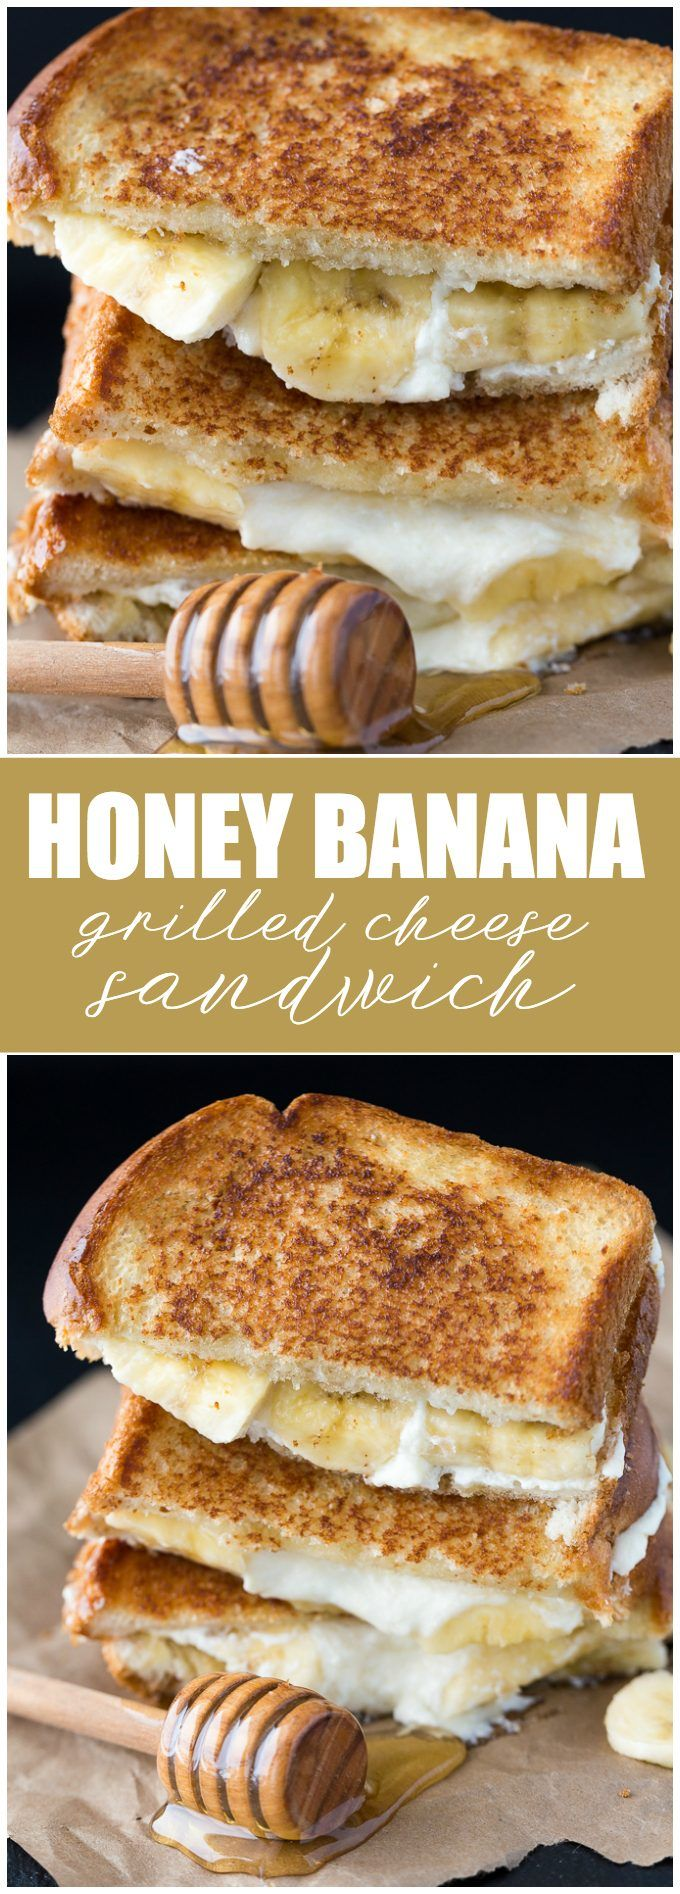 Honey Banana Grilled Cheese Sandwich